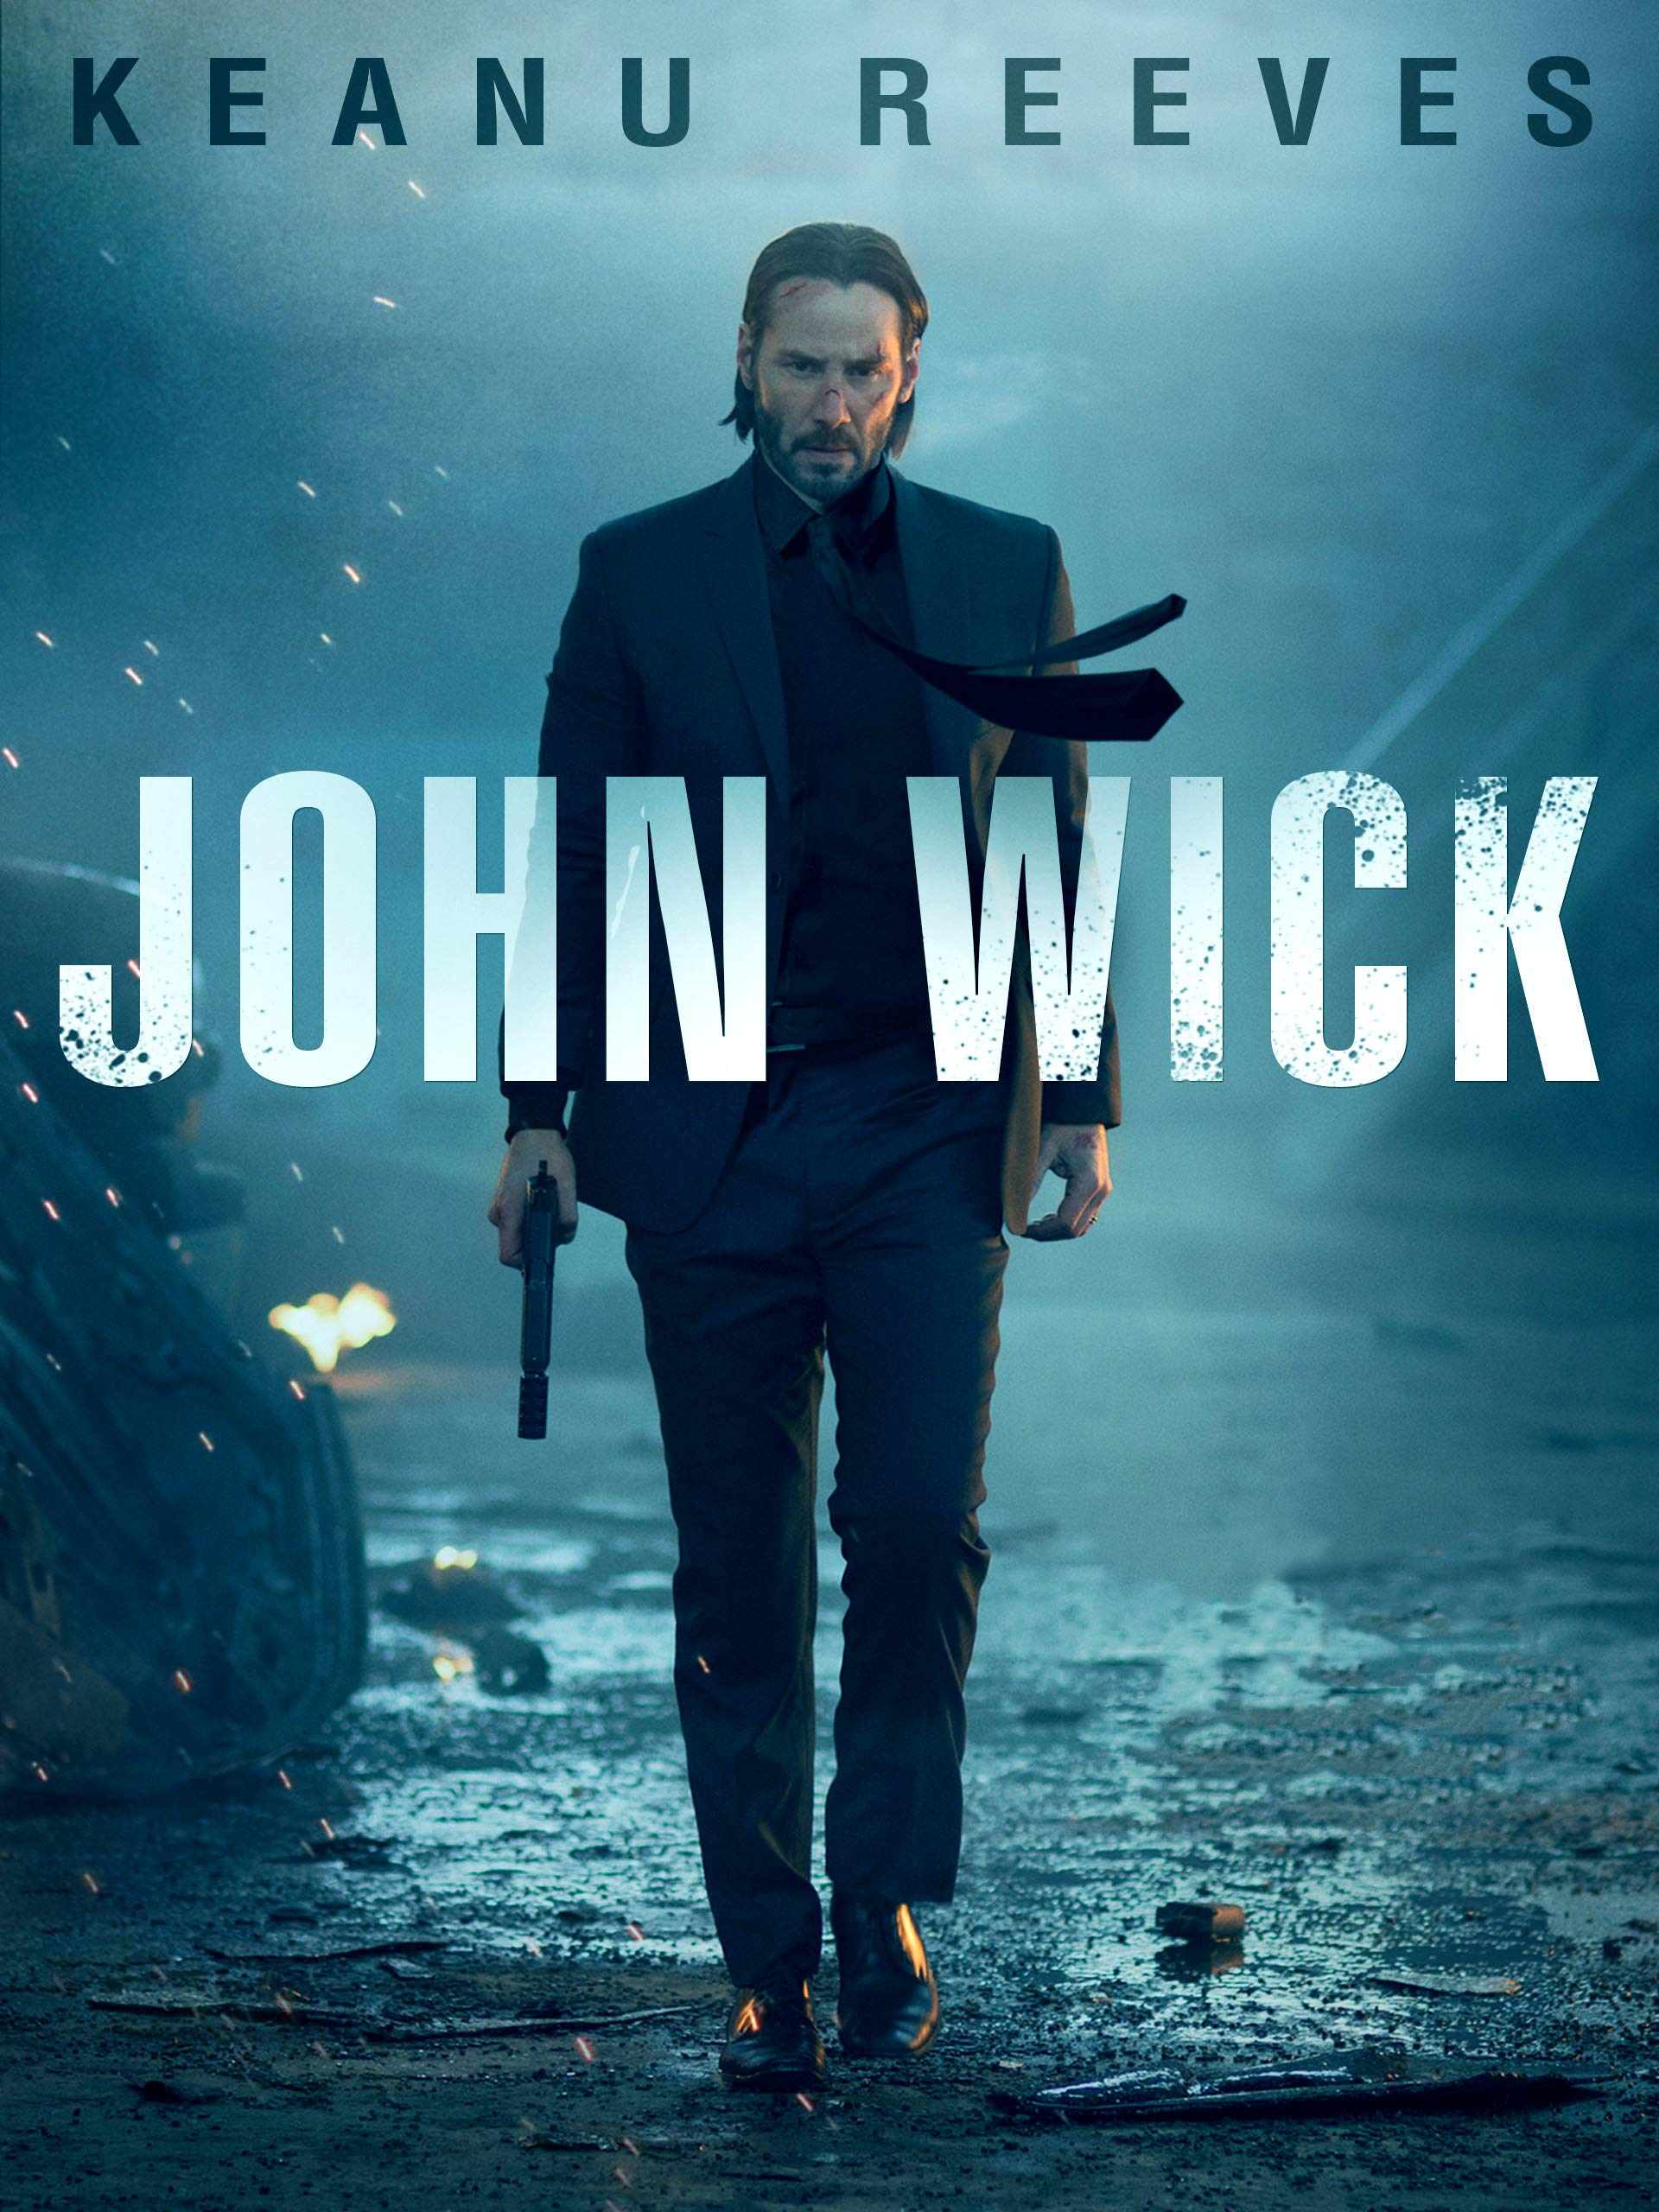 A poster for the film John Wick